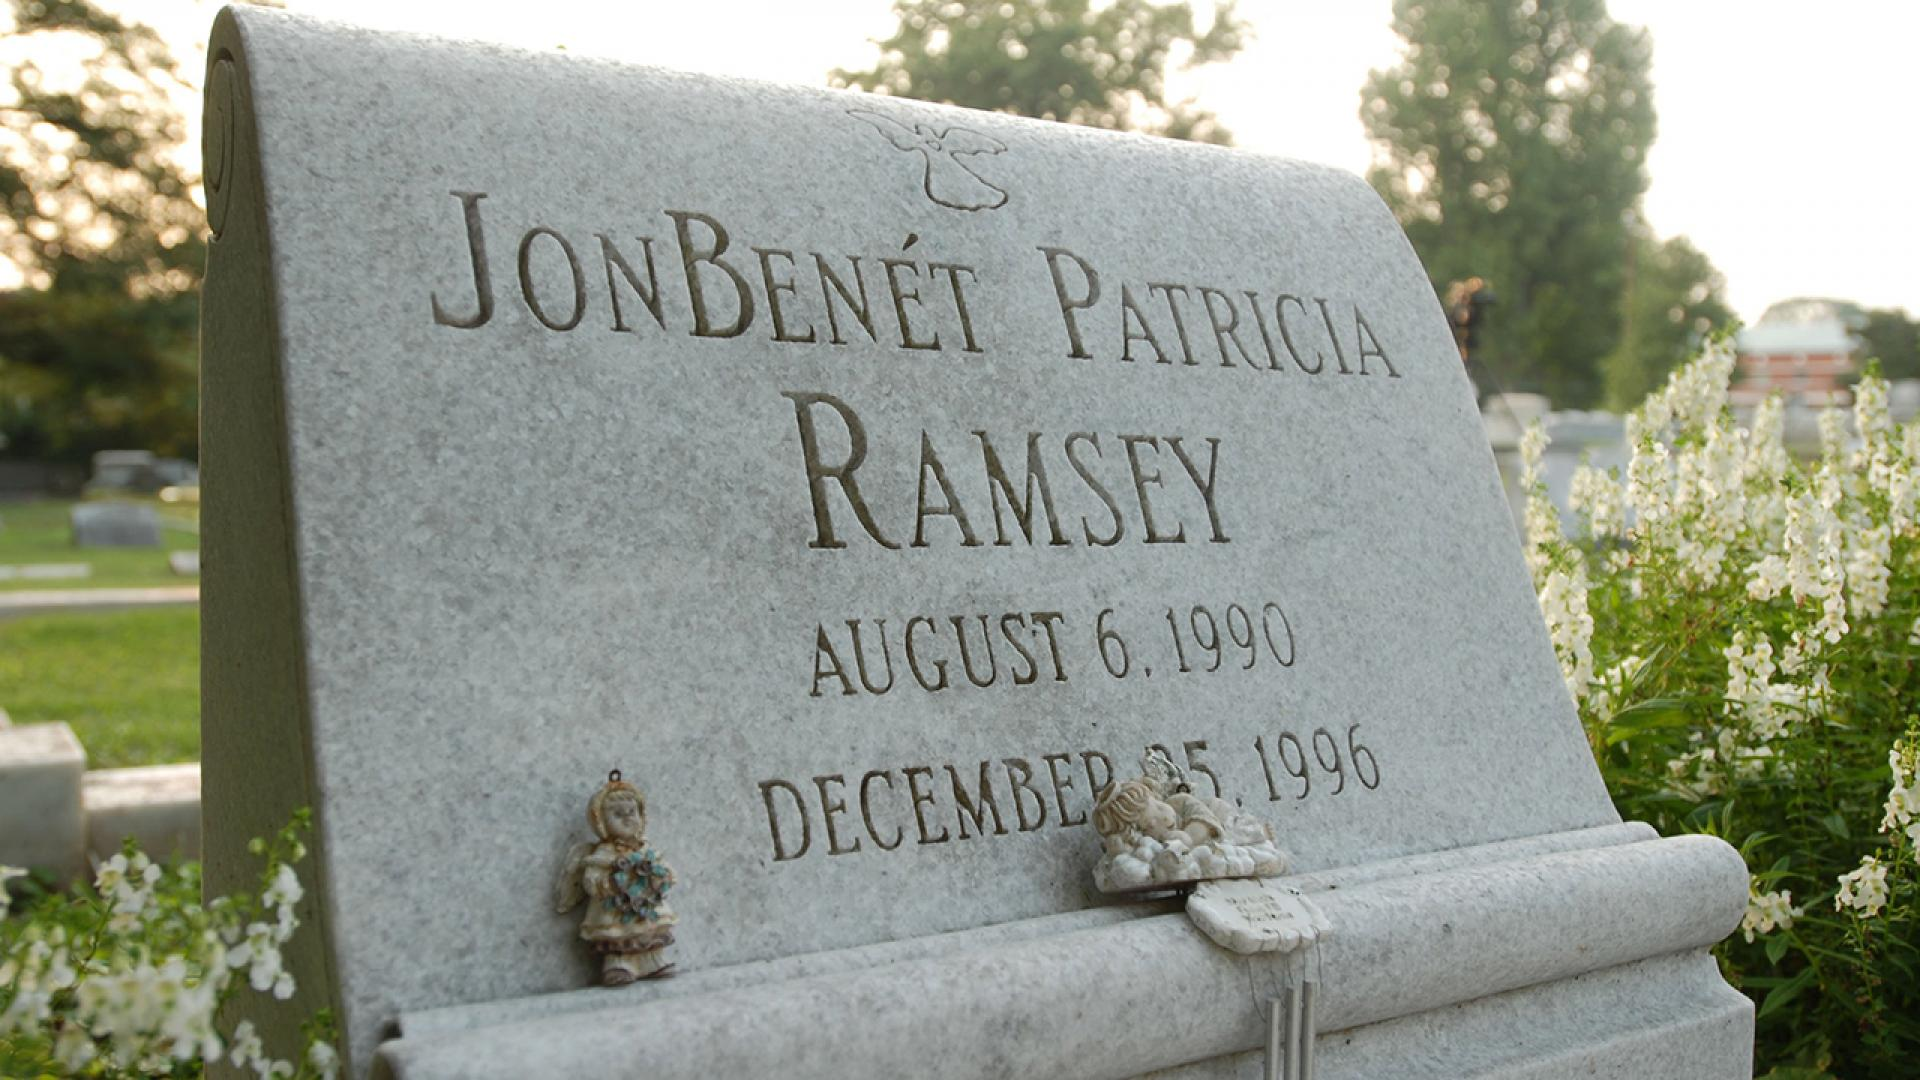 JonBenet Ramsey's grave is pictured here.